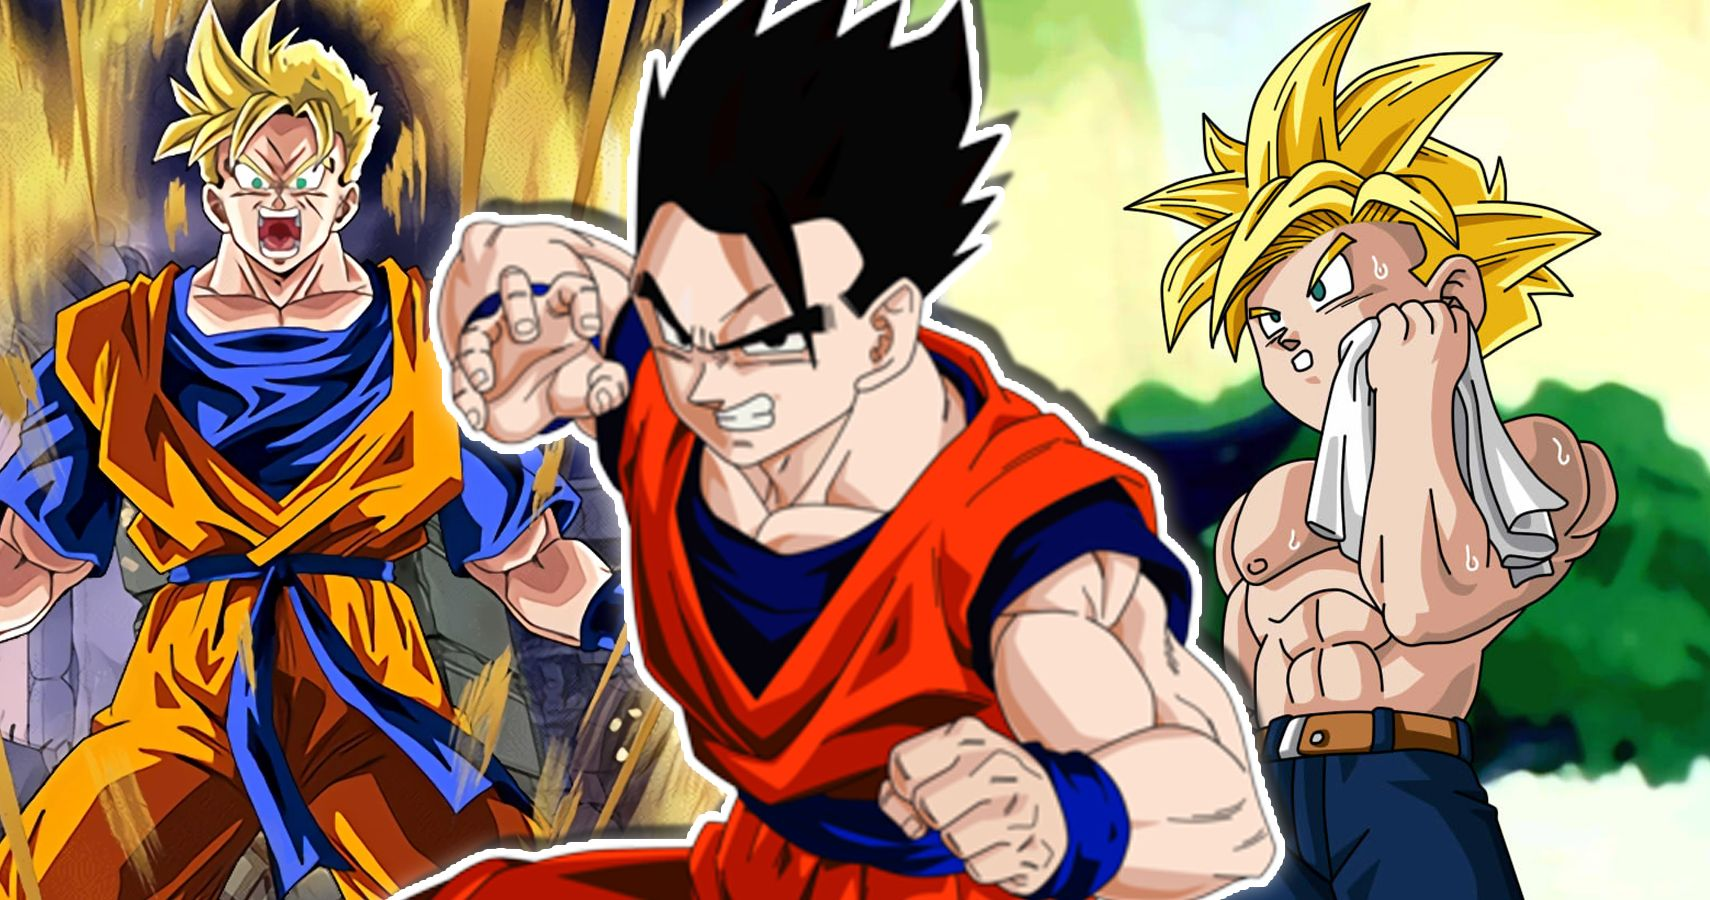 25 Weird Facts Only Super Fans Knew About Gohan S Body Submitted 1 day ago by mrruss3ll. 25 weird facts only super fans knew